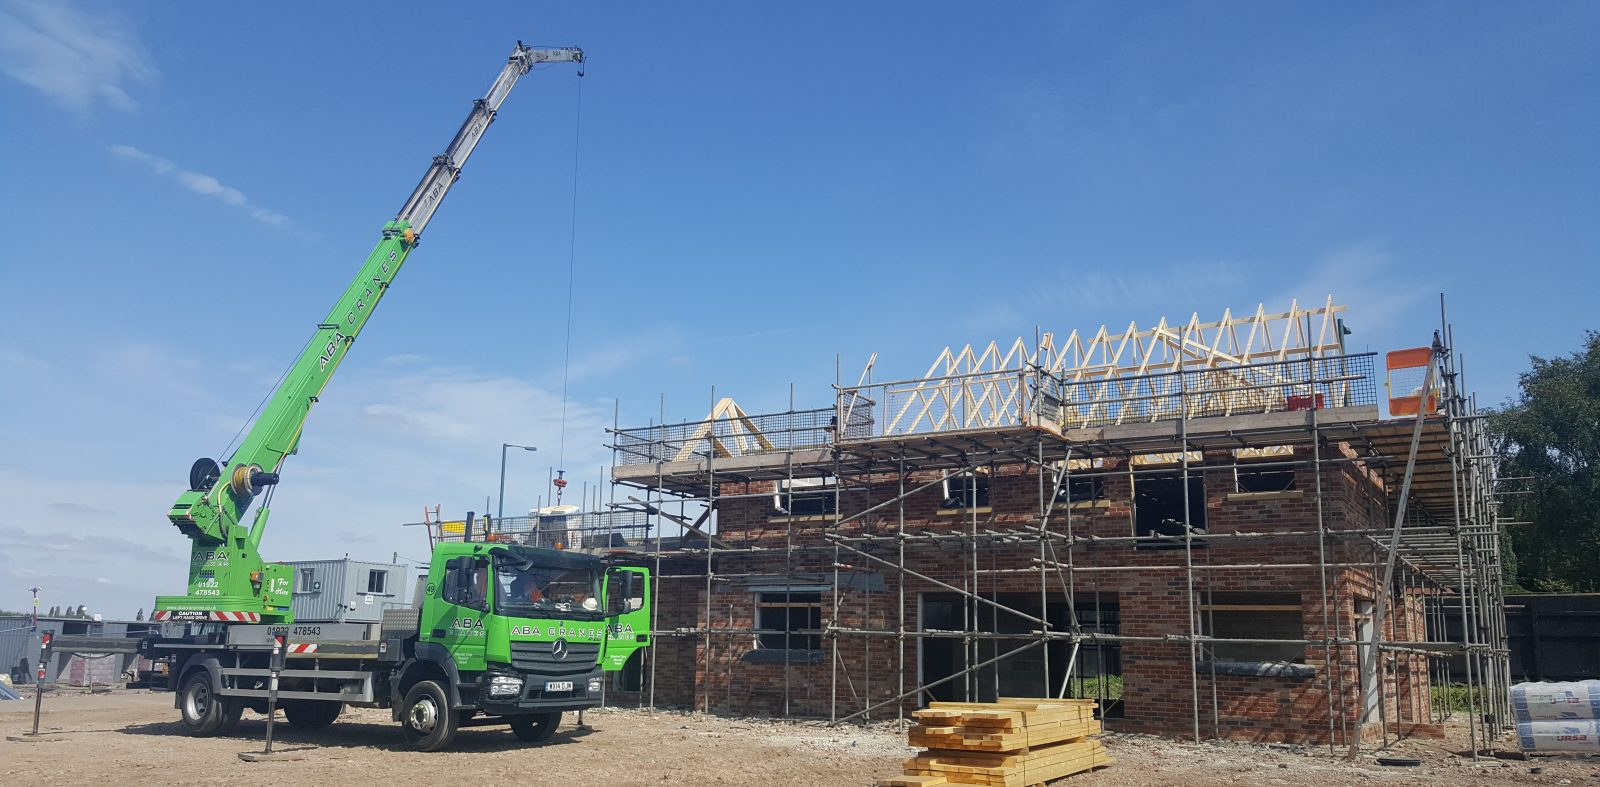 The Coppice Plot 7 Roof Trusses